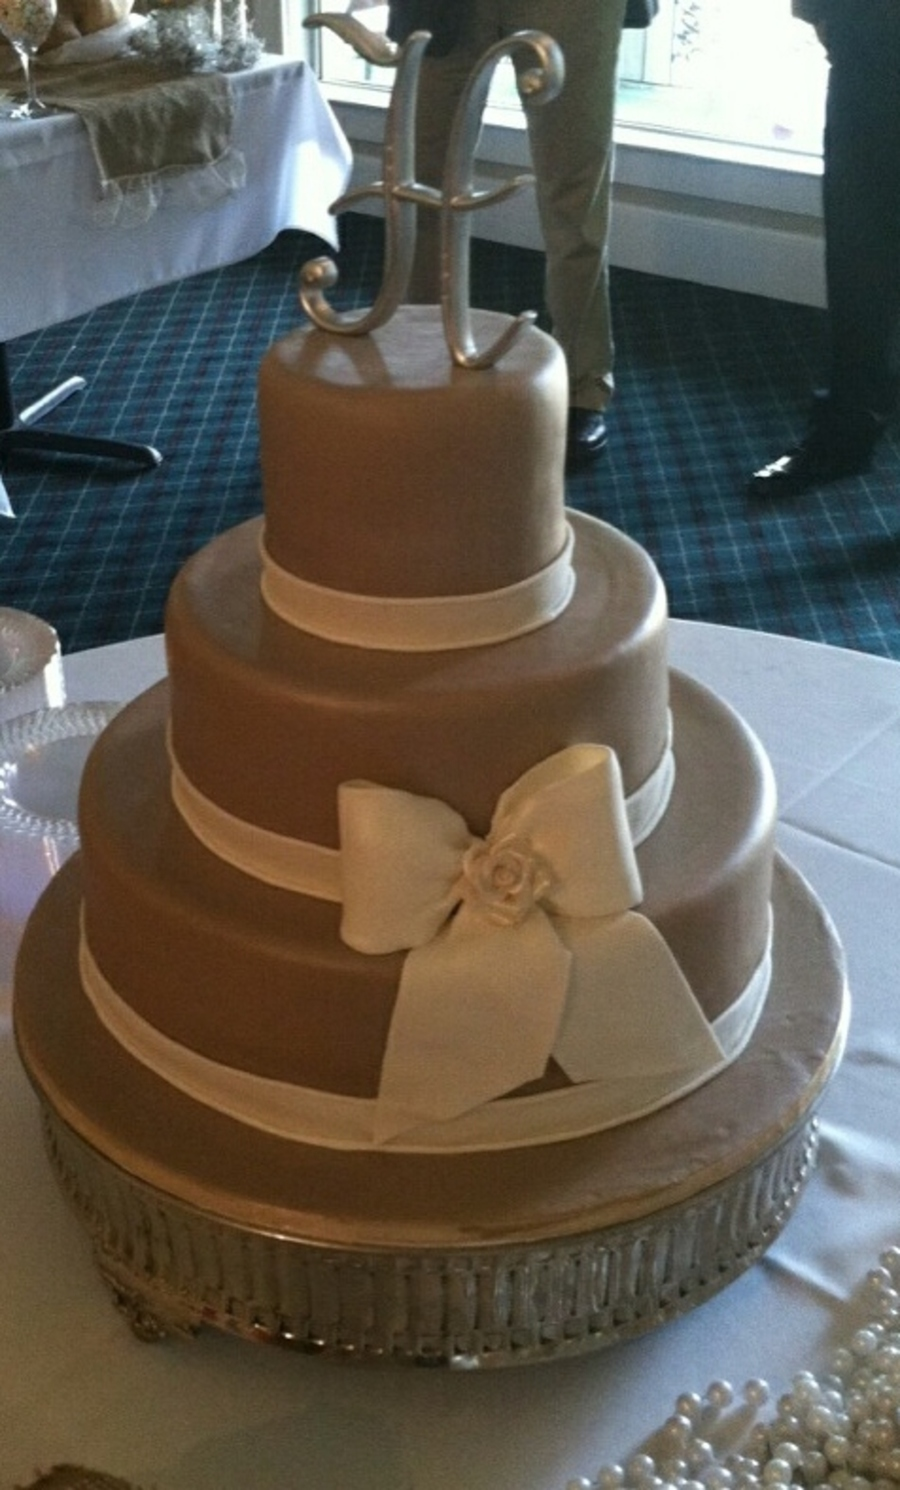 3 Tier Khaki With Ecru Band And Bow Center Of Bow Is Ecru Gumpaste Rose By Tracy Jordan Simply Southern Specialties  on Cake Central